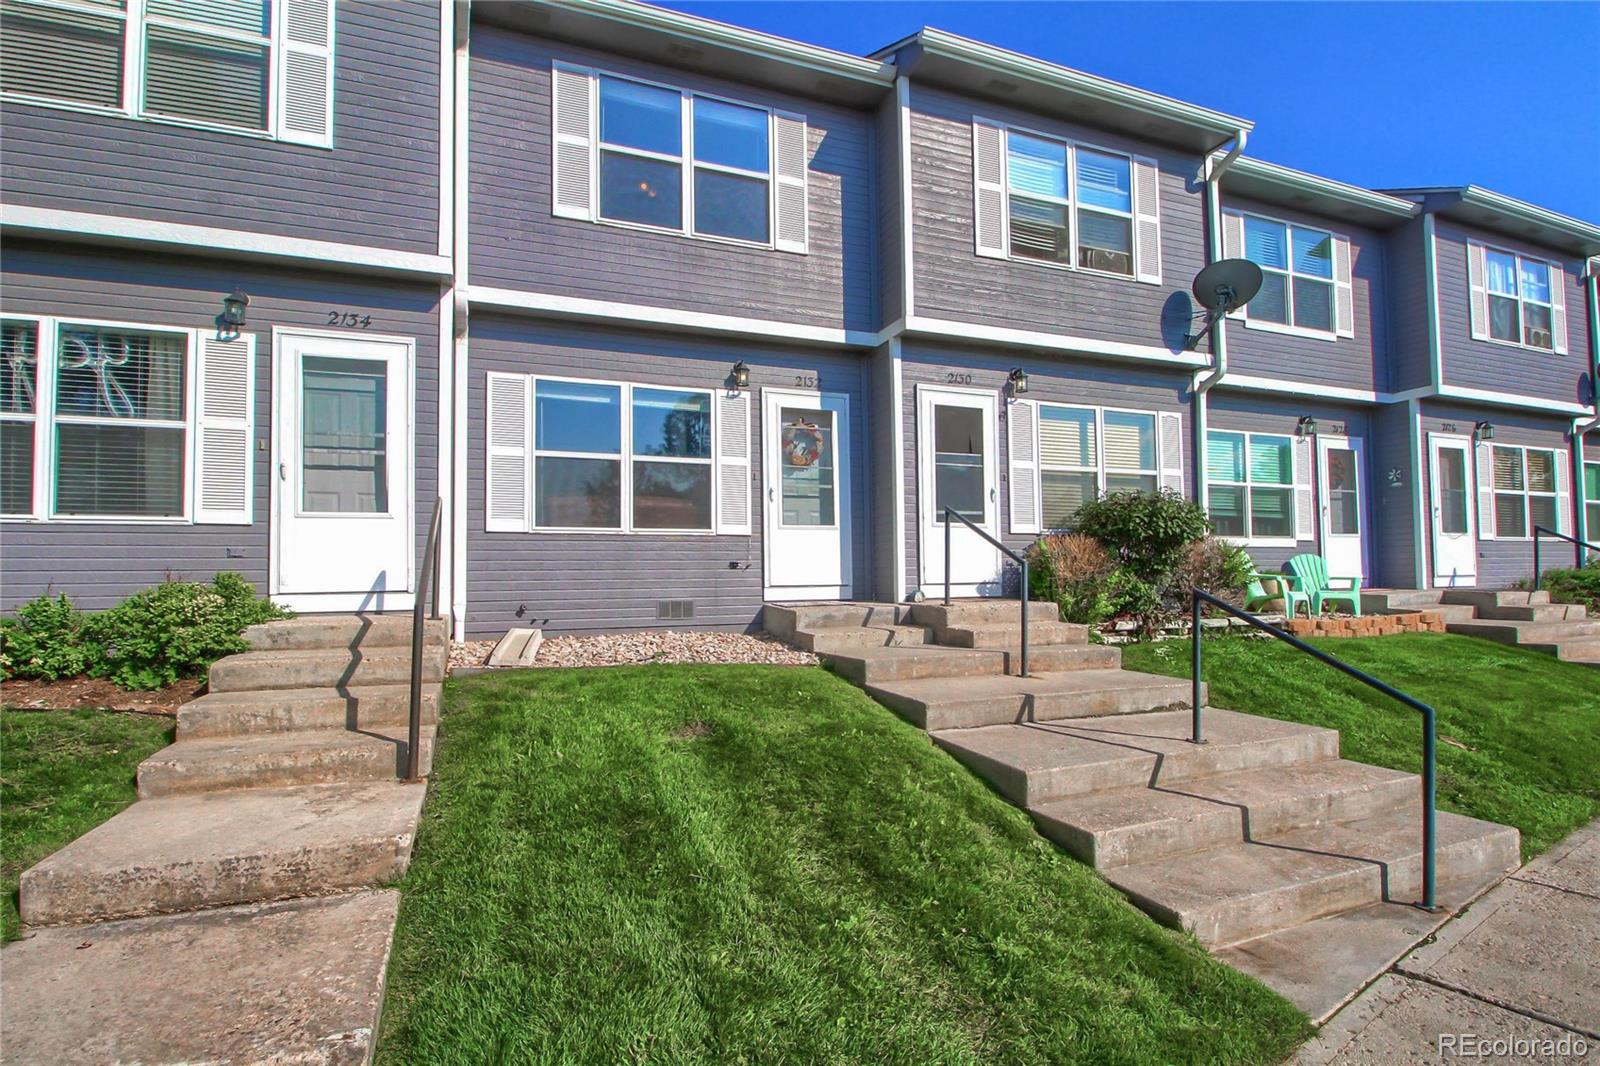 This well cared for 2 bedroom 2 bath townhome is the perfect starter home. Located just off Plum Creek you have easy access to Downtown Castle Rock to enjoy great food and great shopping. This hidden gem is a first time buyers dream for under $300k. This unit has prime parking and features 2 spots right in front. Located moments away from I-25 for quick access to Colorado Springs or Denver.